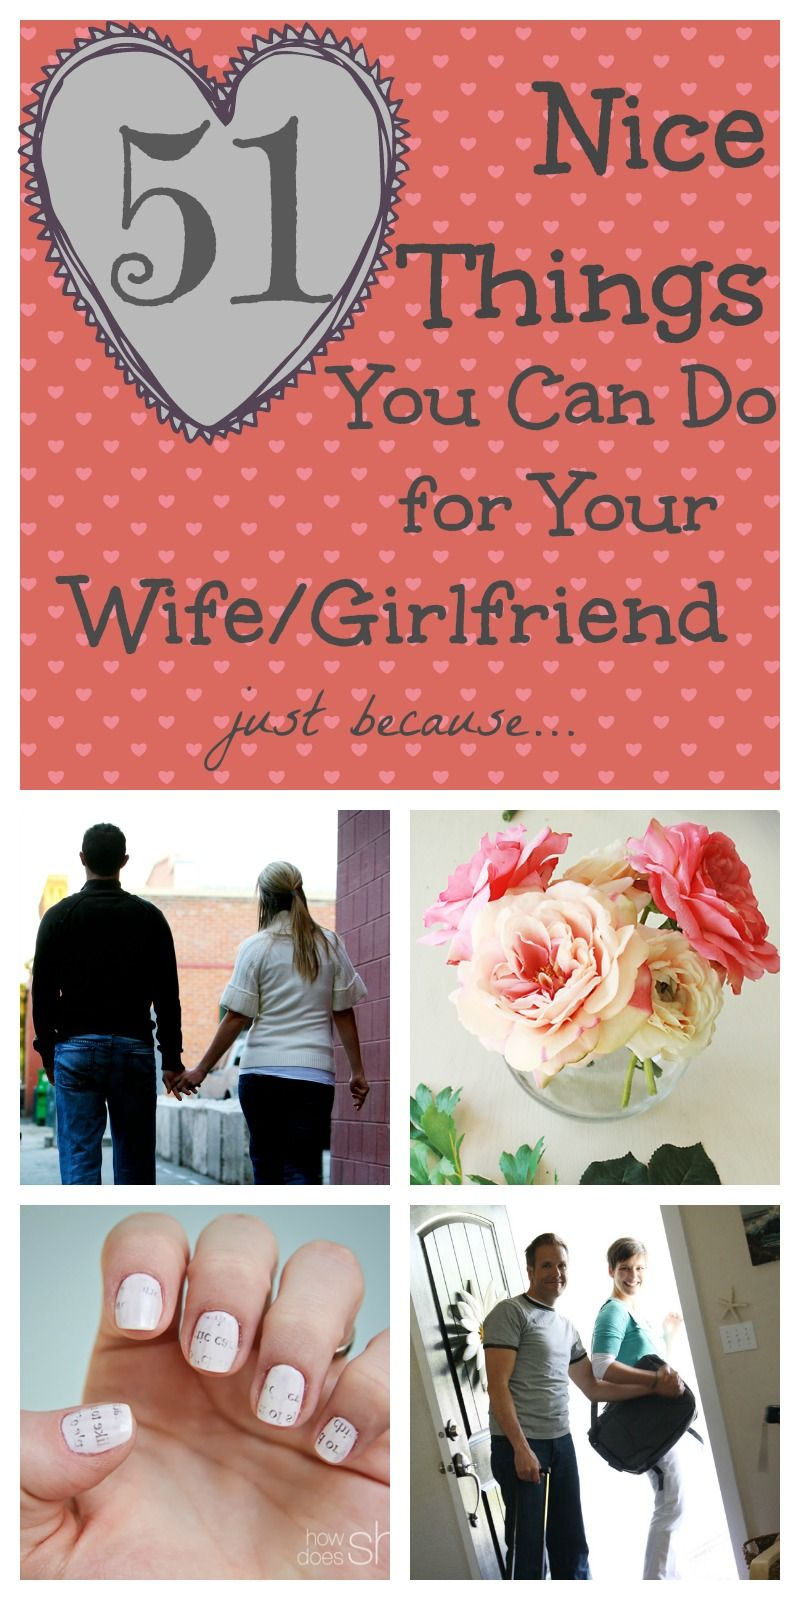 1d599c10b98 51 Nice Things To Do For Your Wife/Girlfriend, just because ...